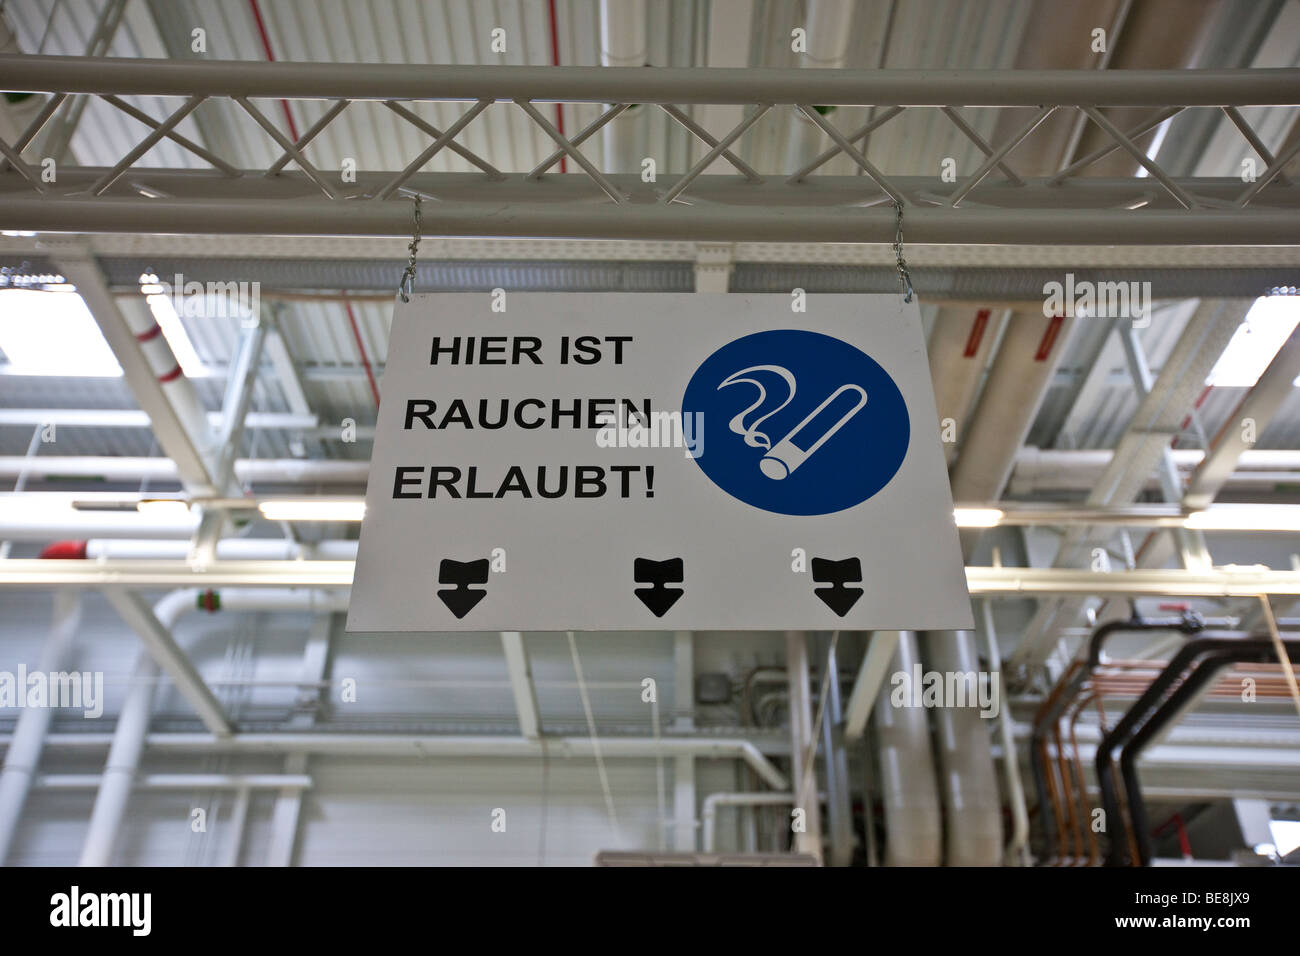 Smoking allowed here, sign, Aston Martin engine plant in Cologne, Rhineland-Palatinate, Germany, Europe - Stock Image